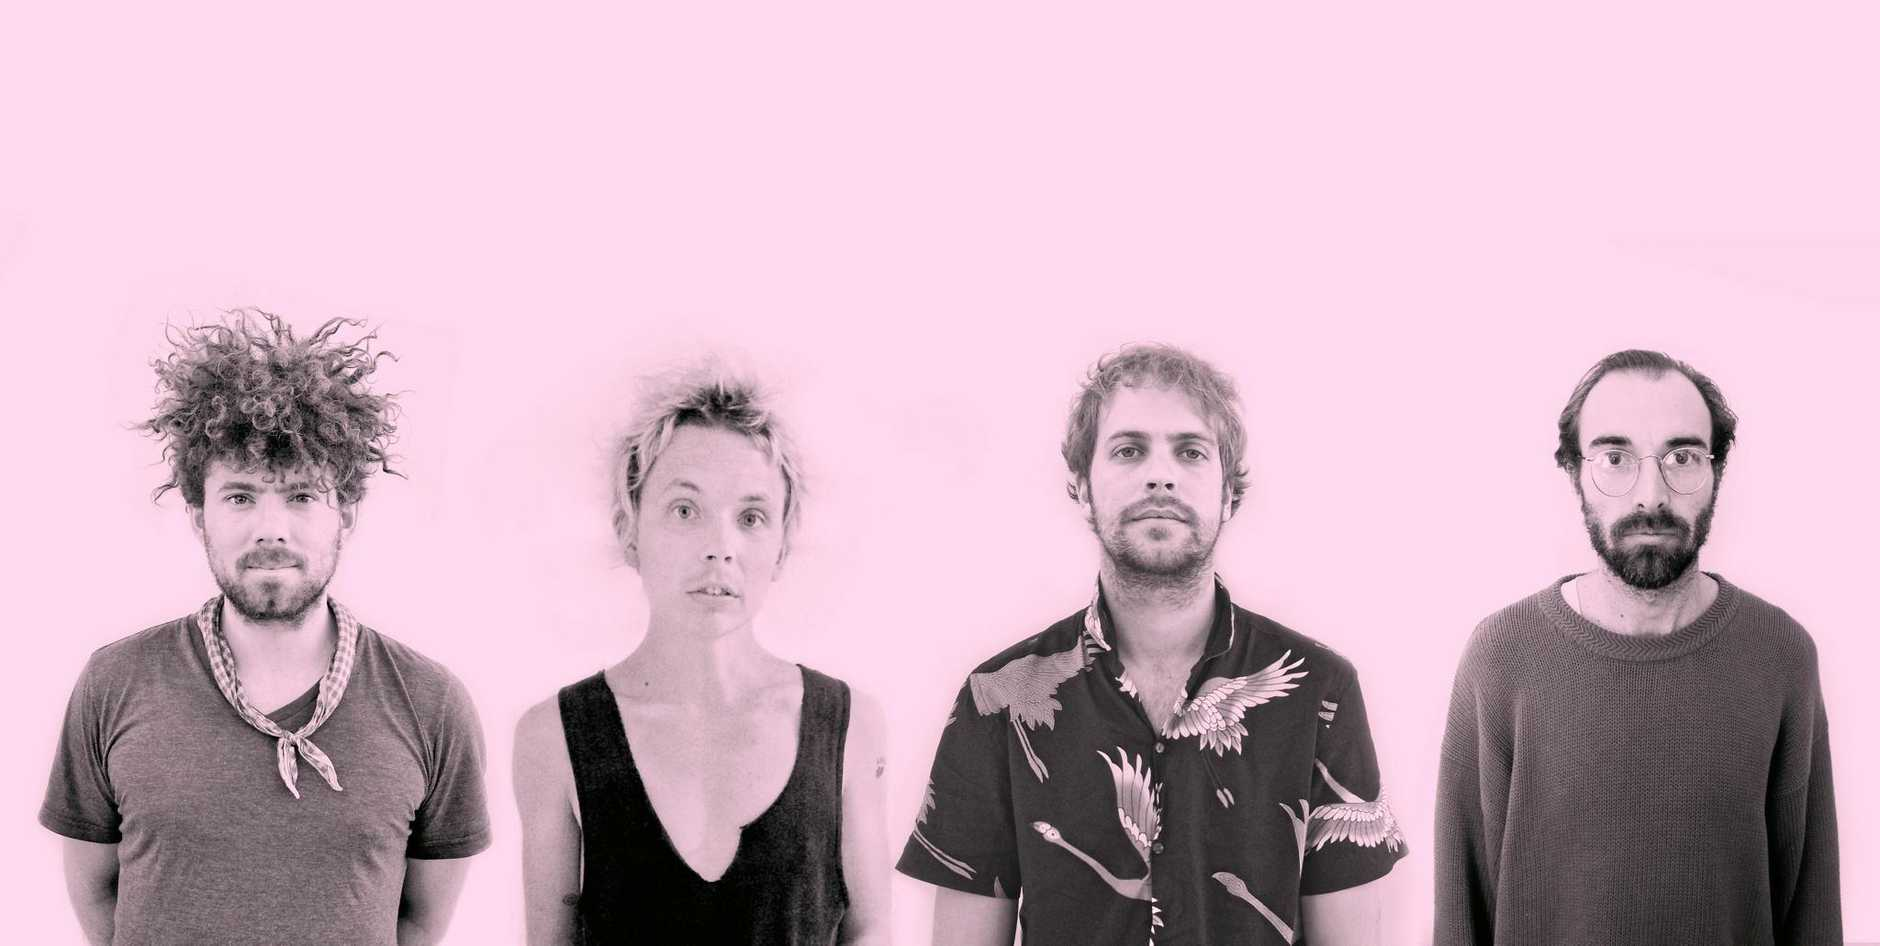 NOT SO TAME: Pond is a psychedelic rock band from Perth, Western Australia, formed in 2008.